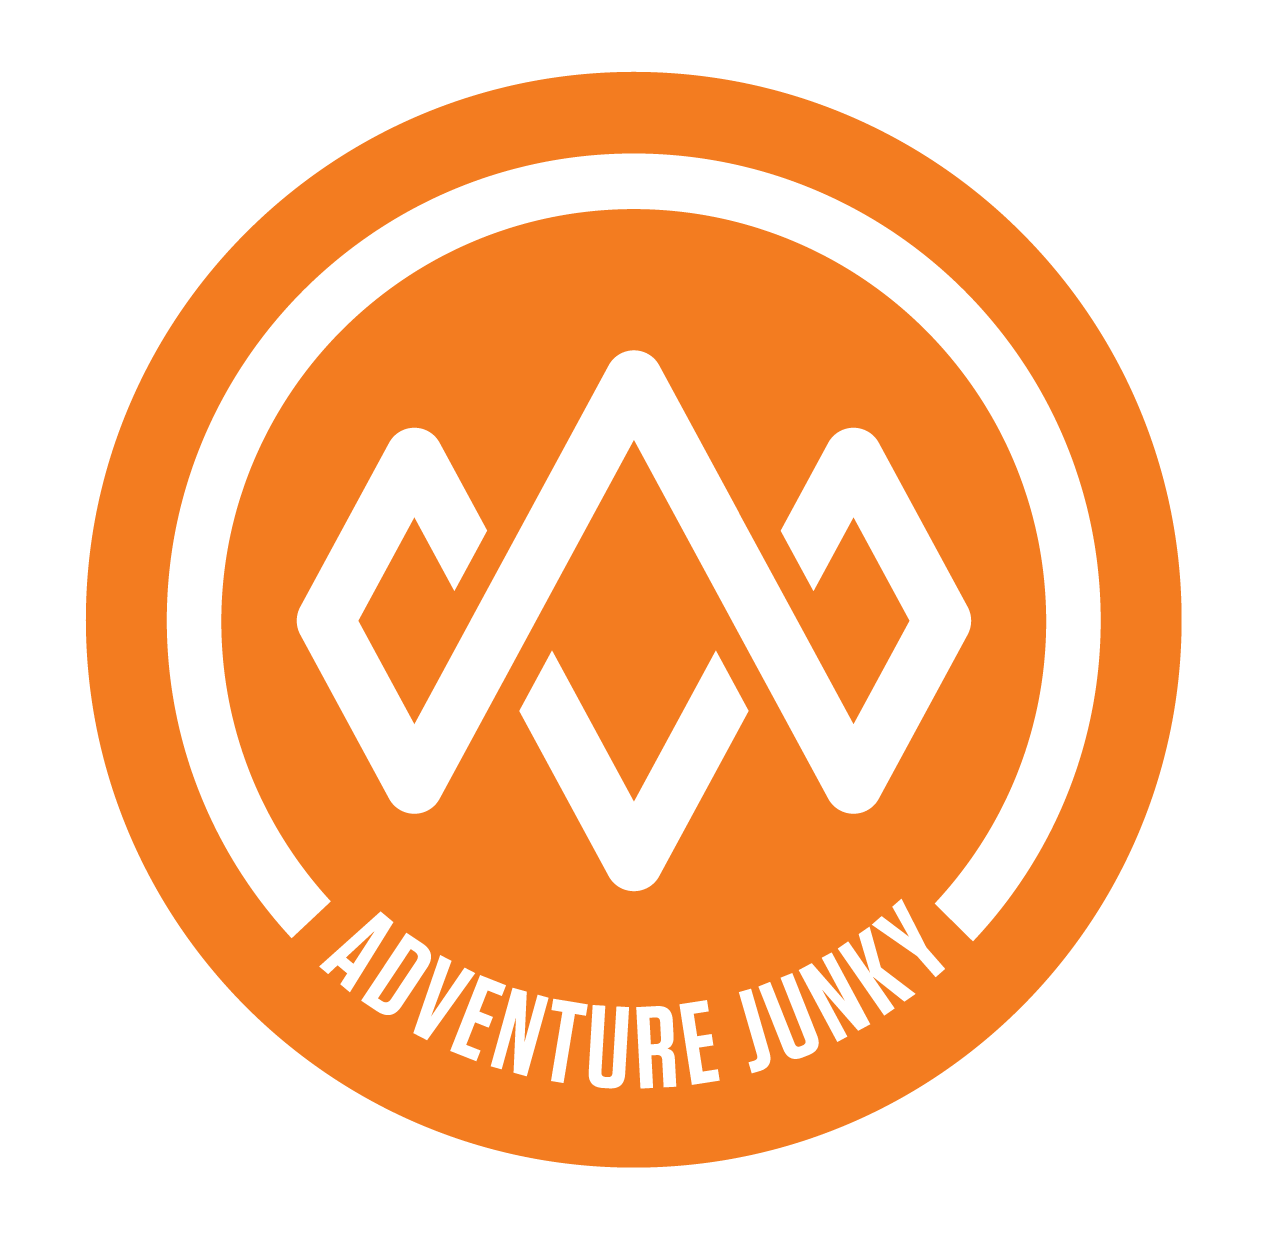 Adventure Junky makes a game of sustainable travel practices, awarding points for low impact experiences and showcasing destinations and travel operators that offer them. Friends can play against one another or compete globally for bragging rights. Every day 3 million travellers cross international borders, a number that has been growing exponentially since the 1950's. By 2030 that number could double. Are the people and places we love to visit resilient enough to withstand the flood of overtourism? The tourism and travel industries need to lead the way in protecting the natural and cultural assets upon which they rely for survival - so embracing B Corp and extolling your message is not only natural - it's imperative.